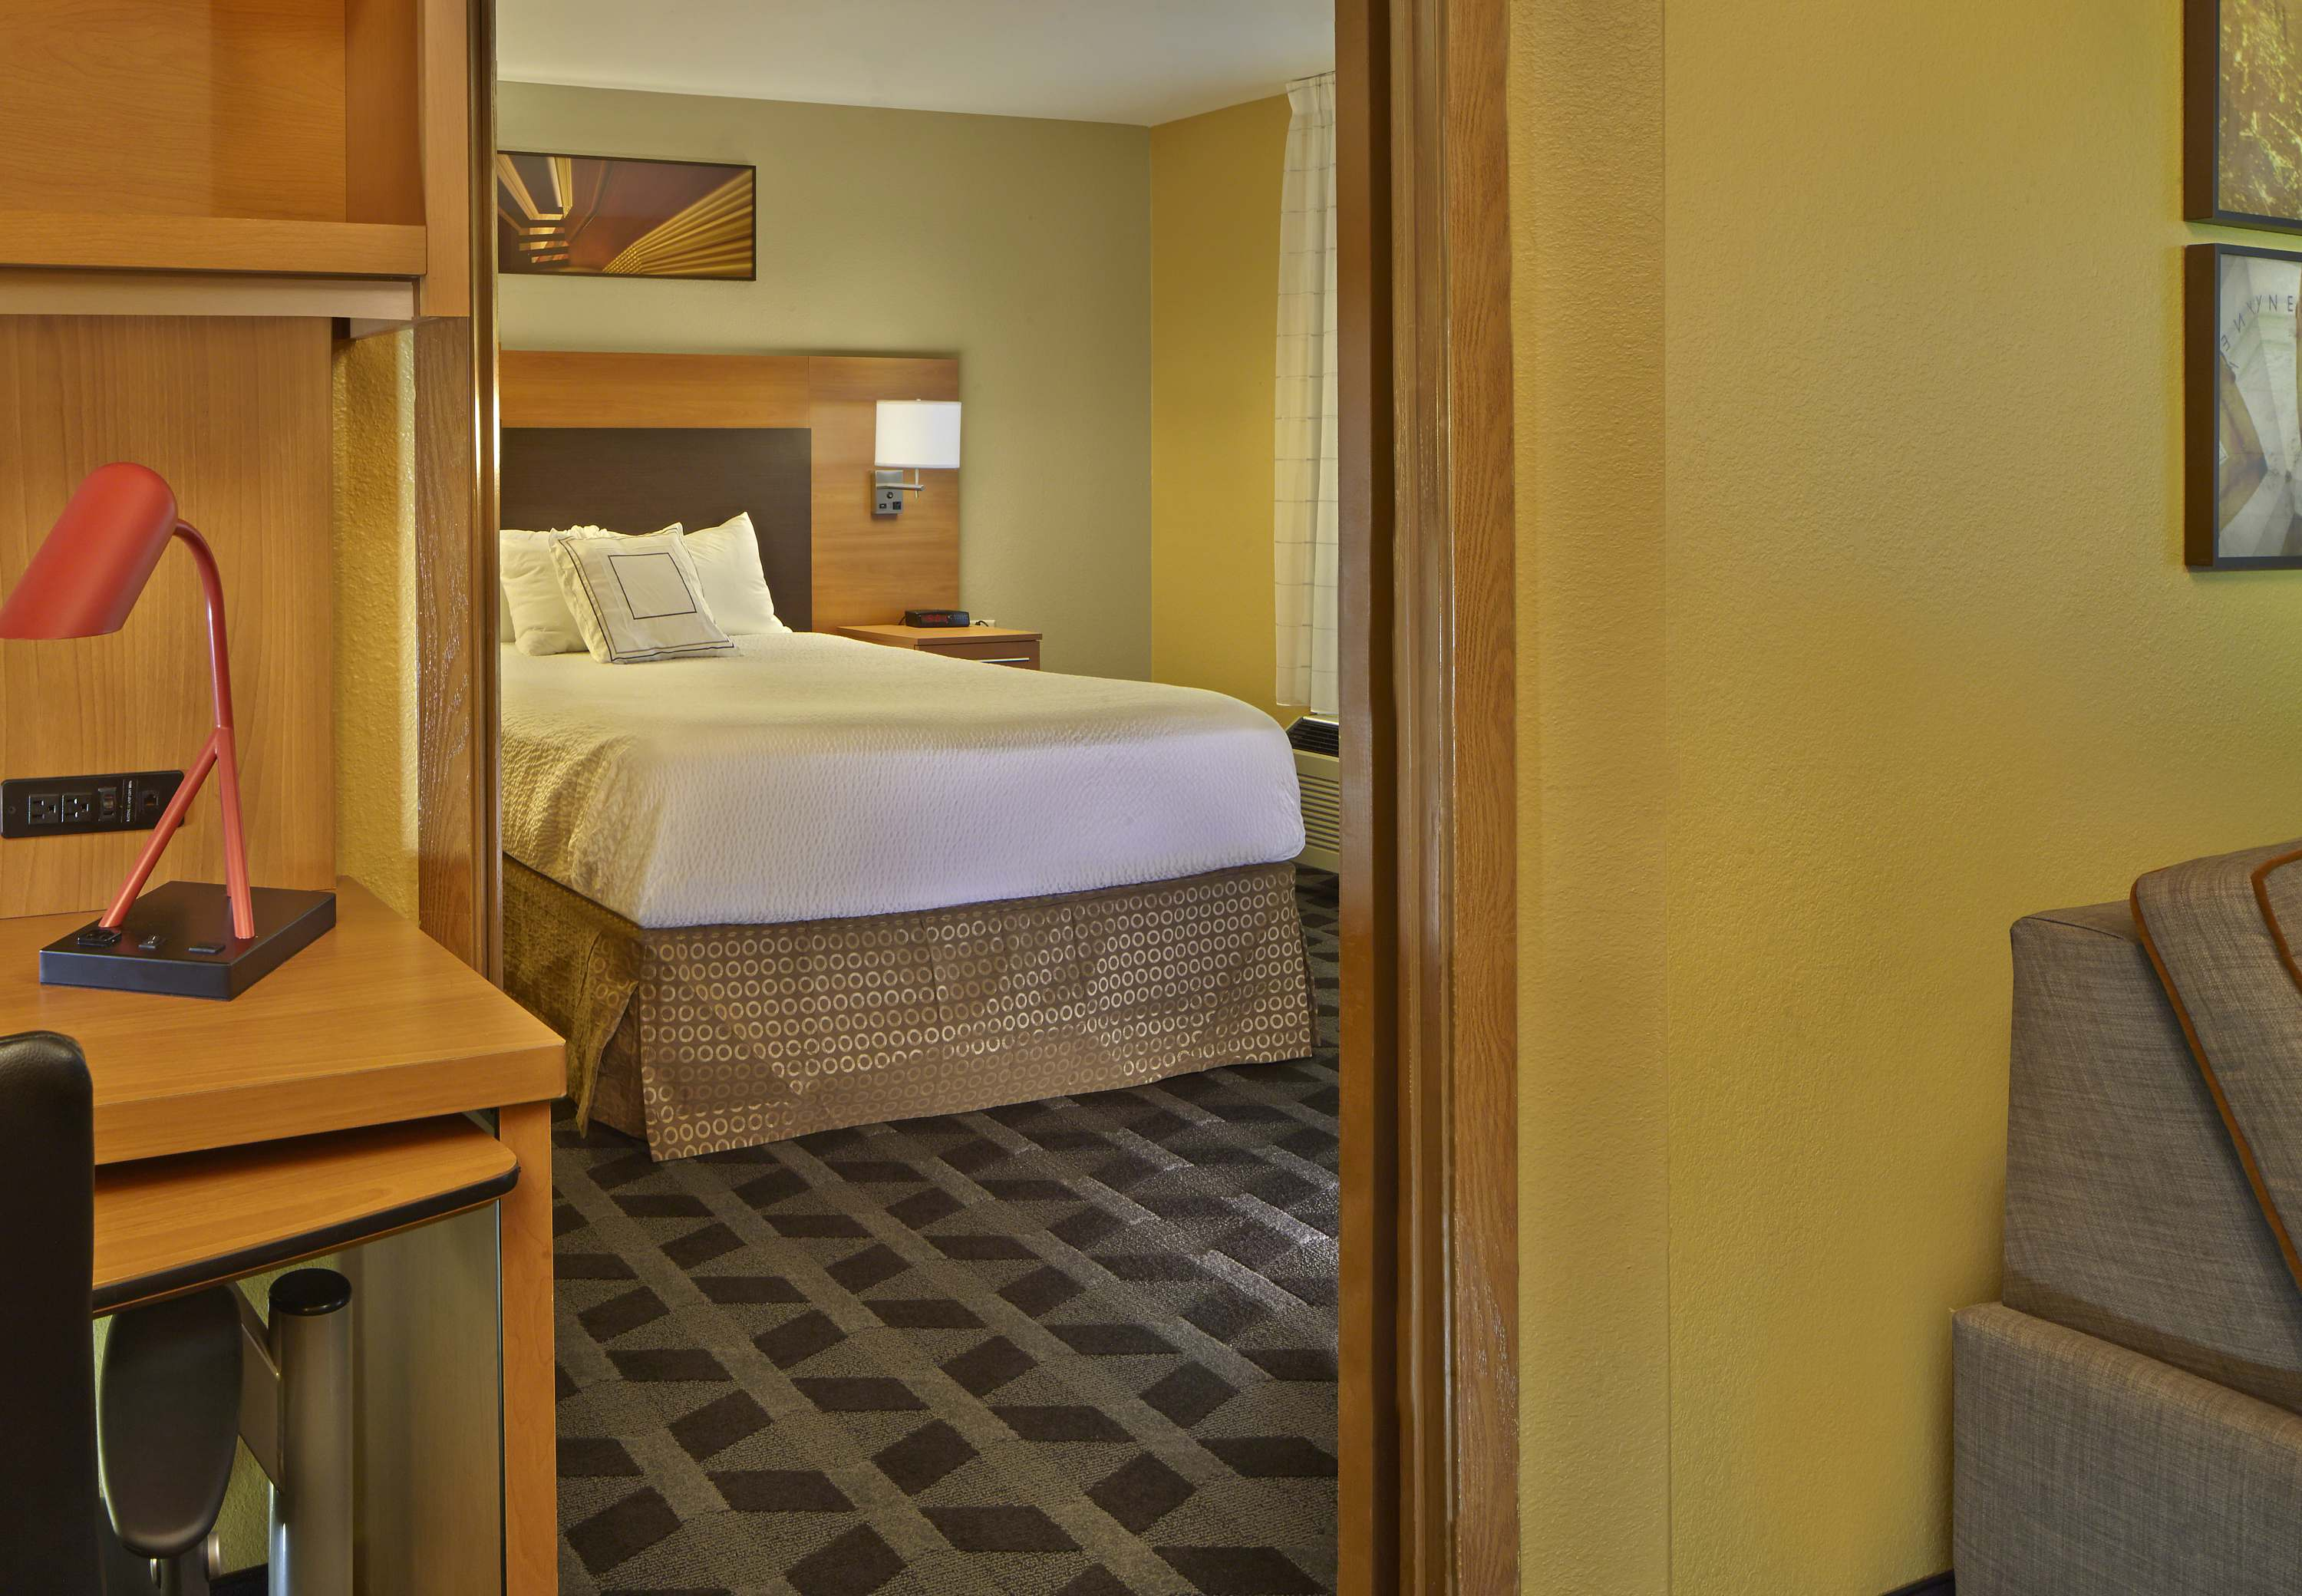 TownePlace Suites by Marriott Boston Tewksbury/Andover image 13